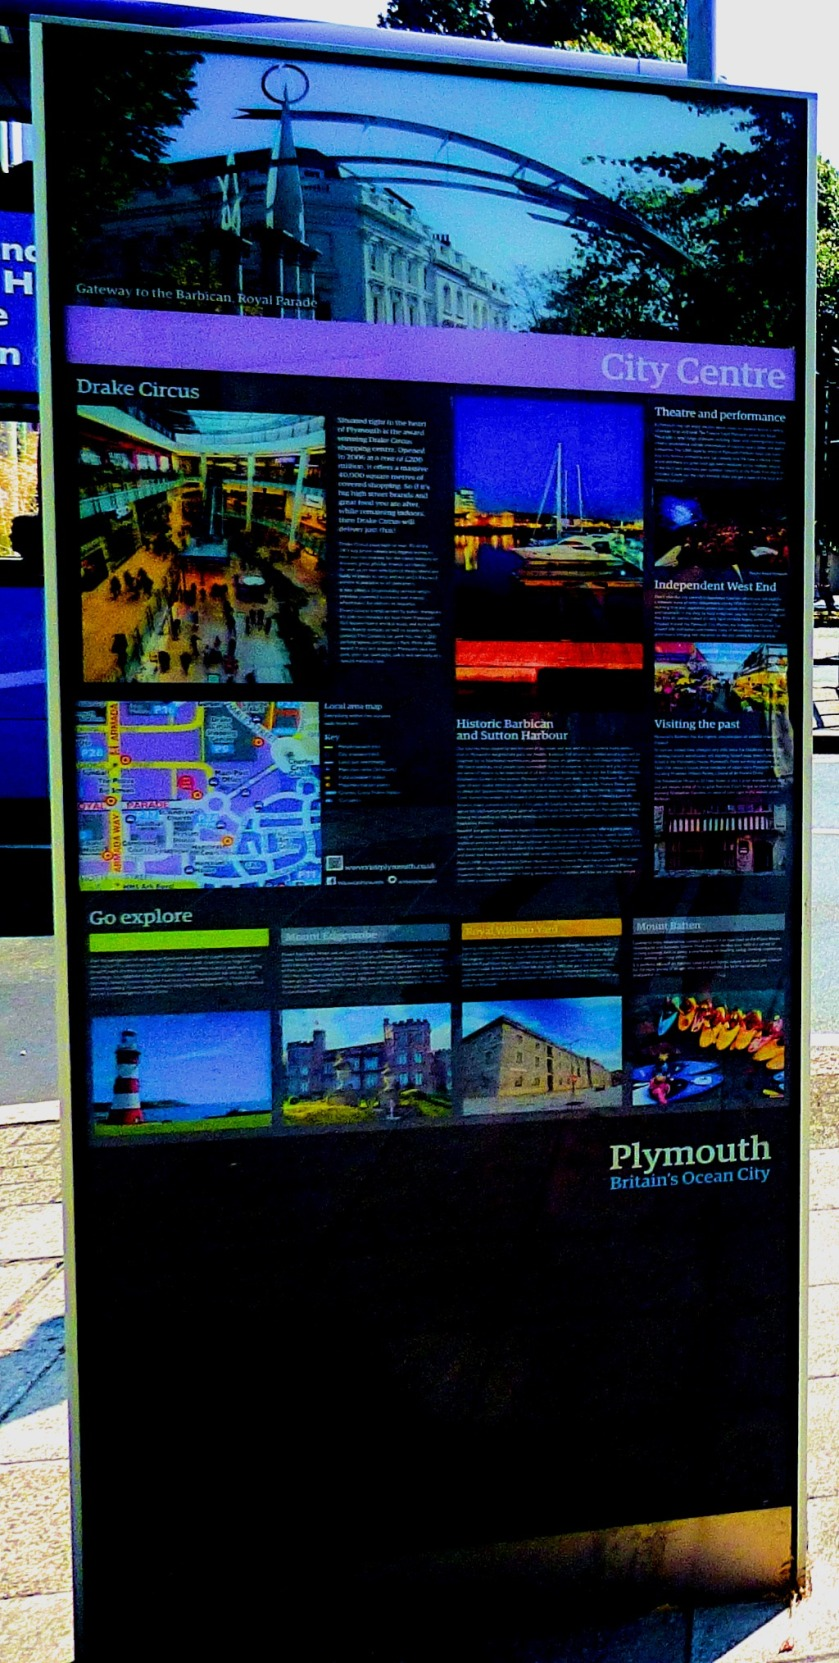 Plymouth - Britain's Ocean City